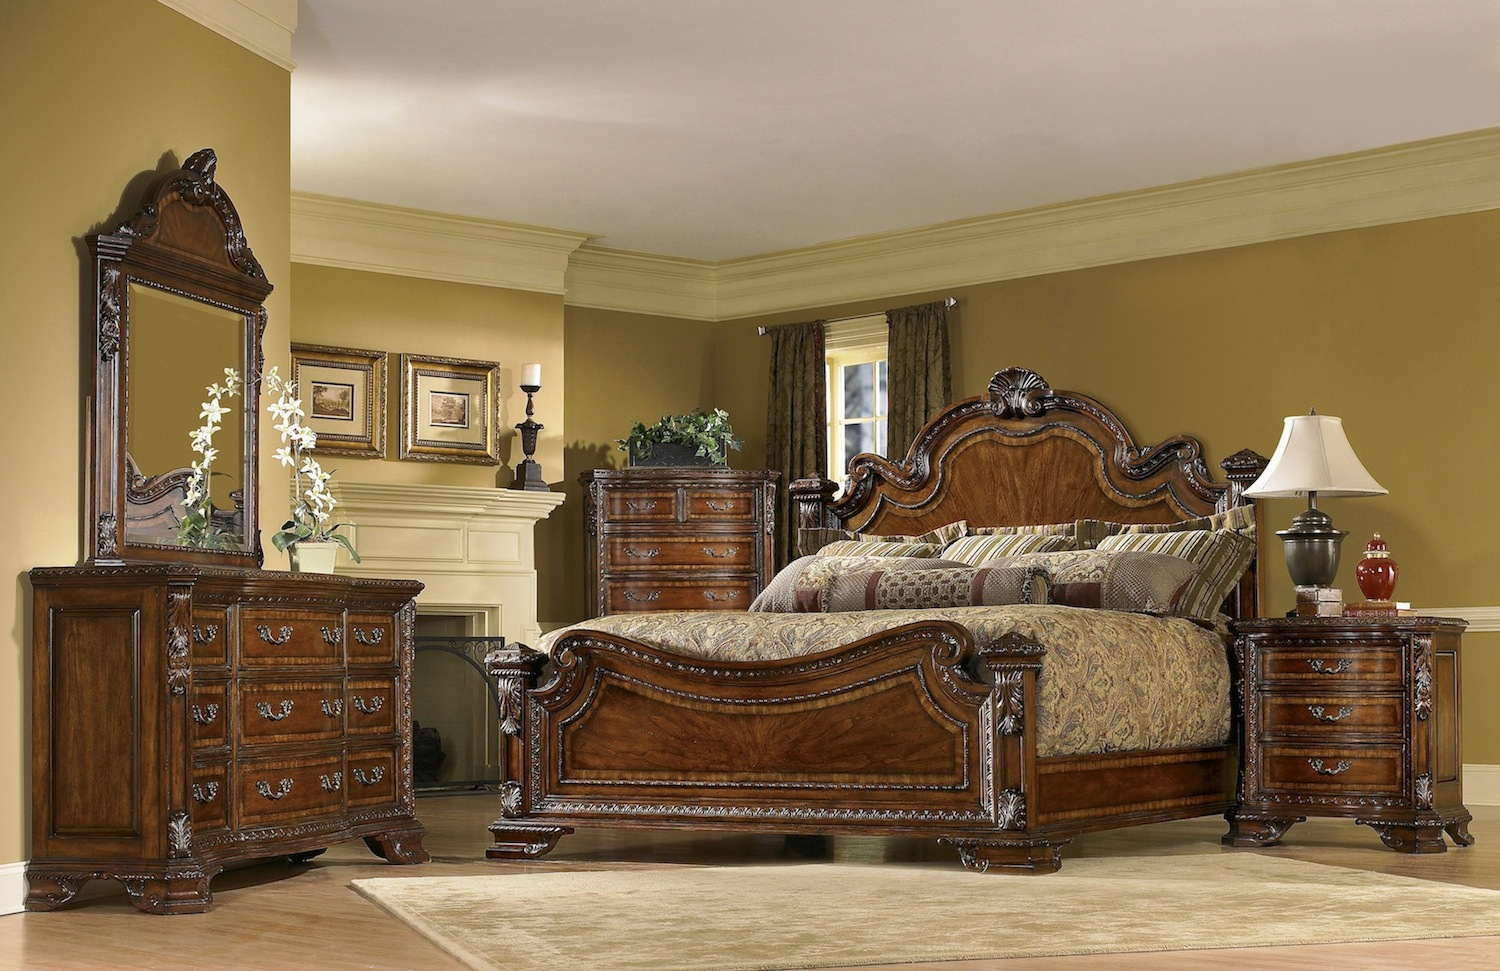 Traditional european style bedroom furniture